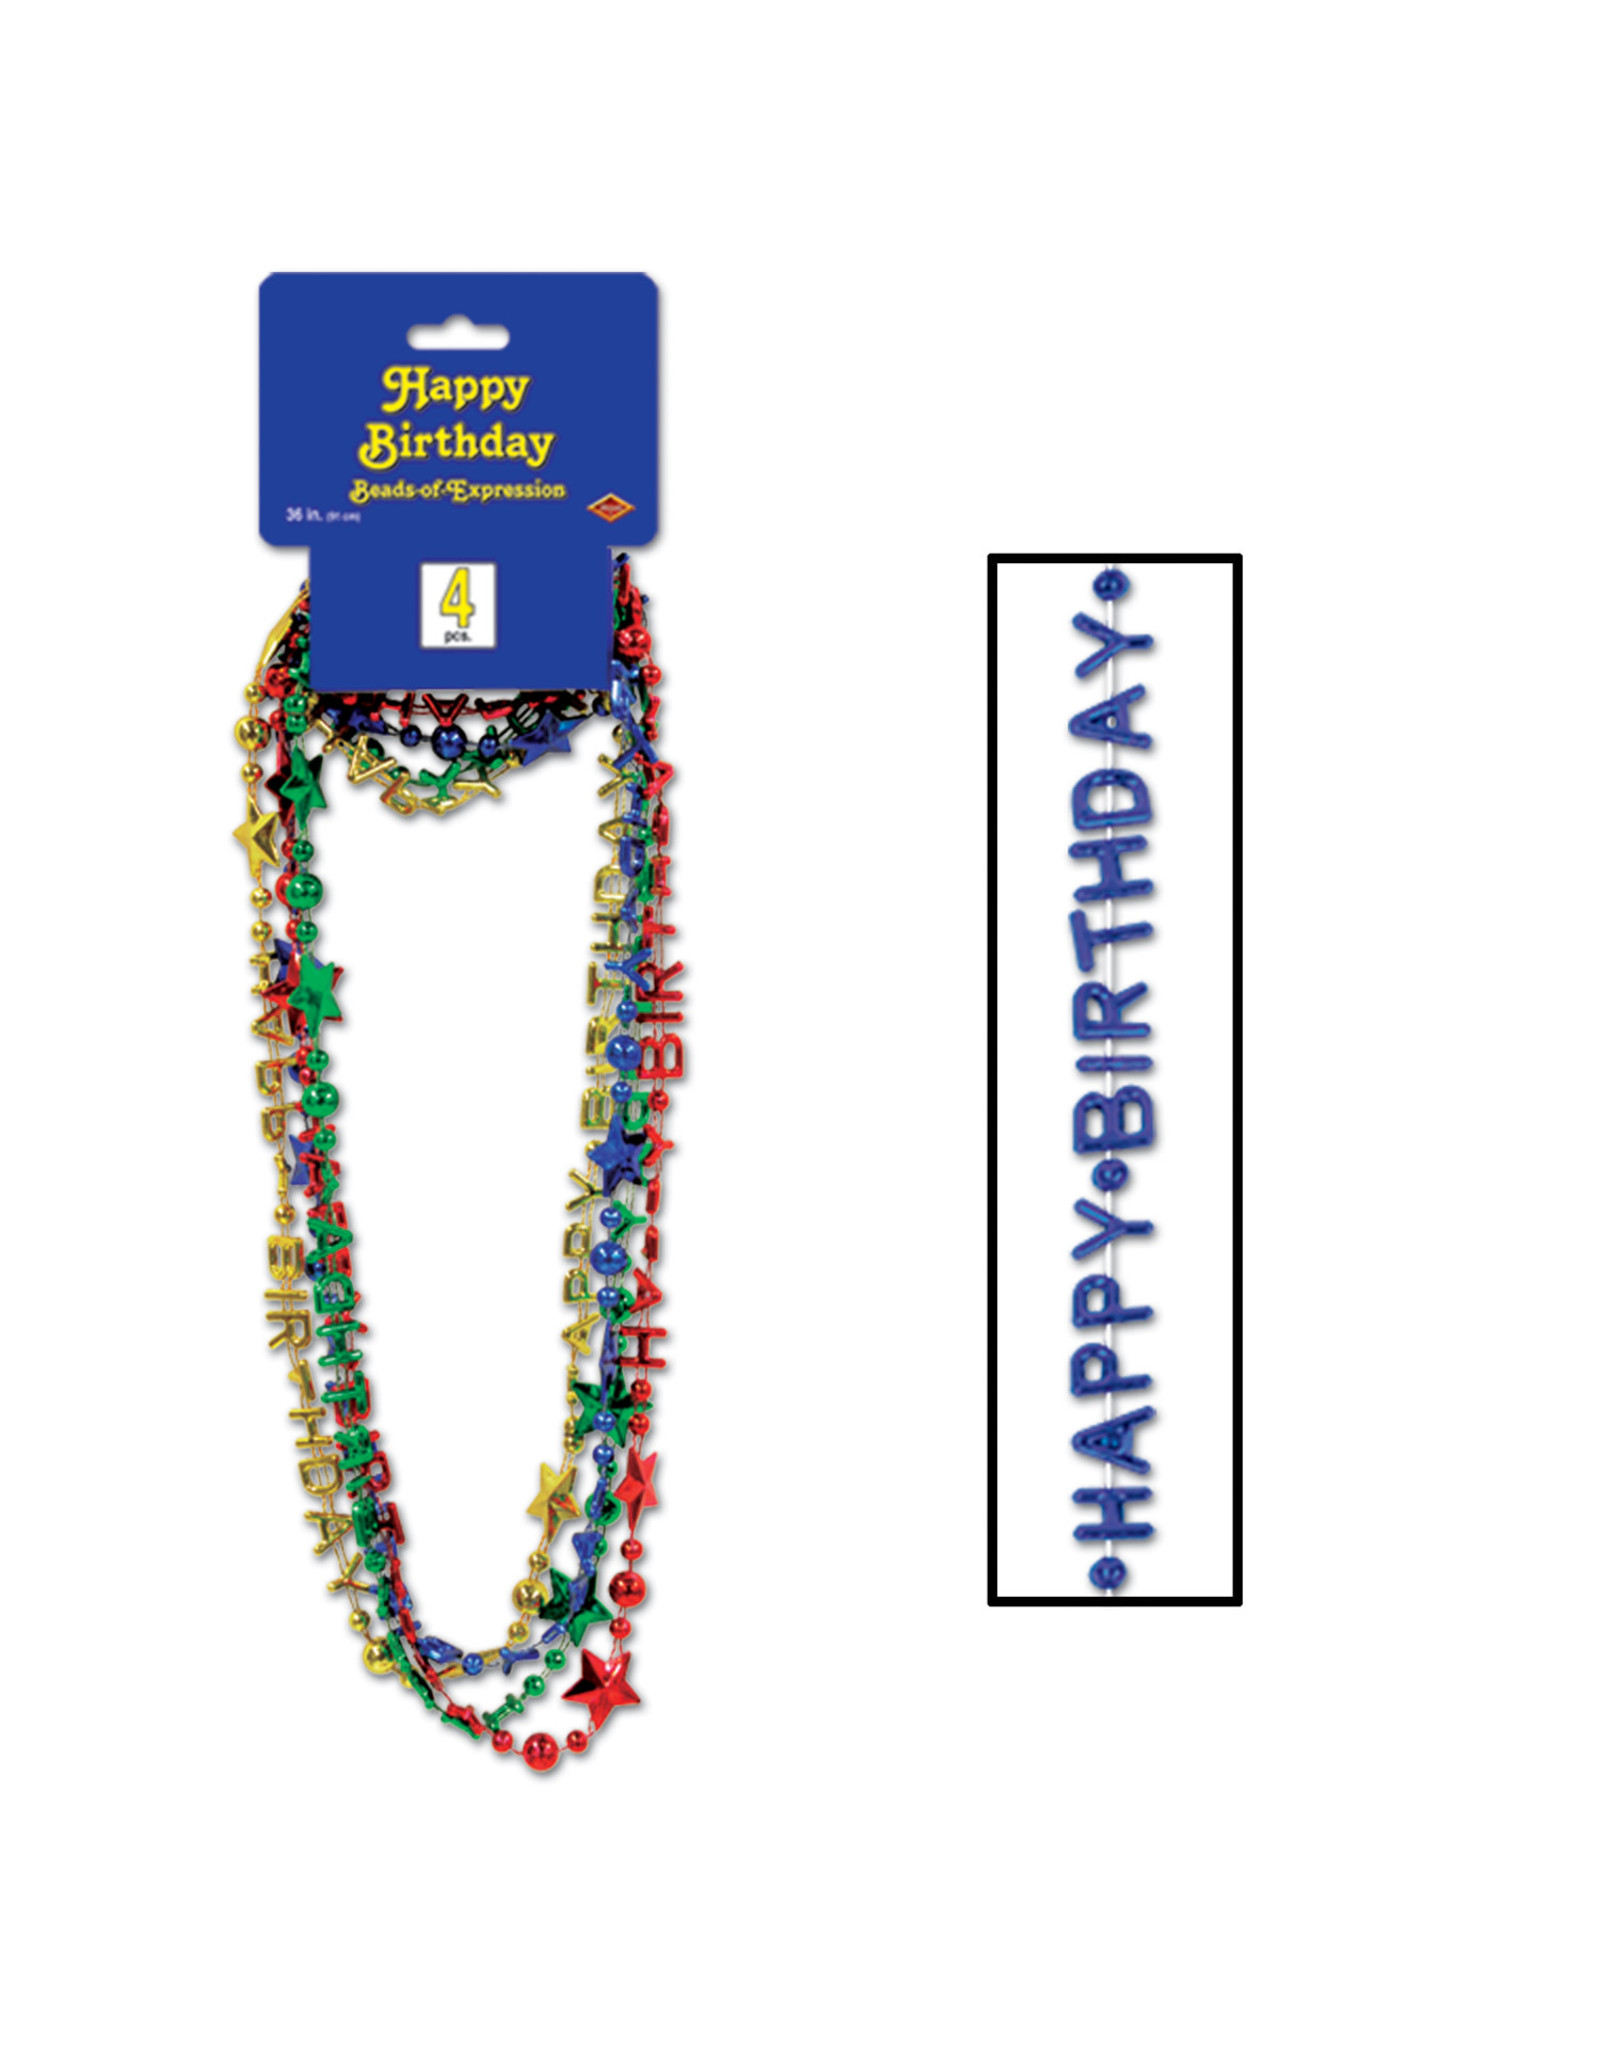 Happy Birthday Beads Asst. Color - 4ct.